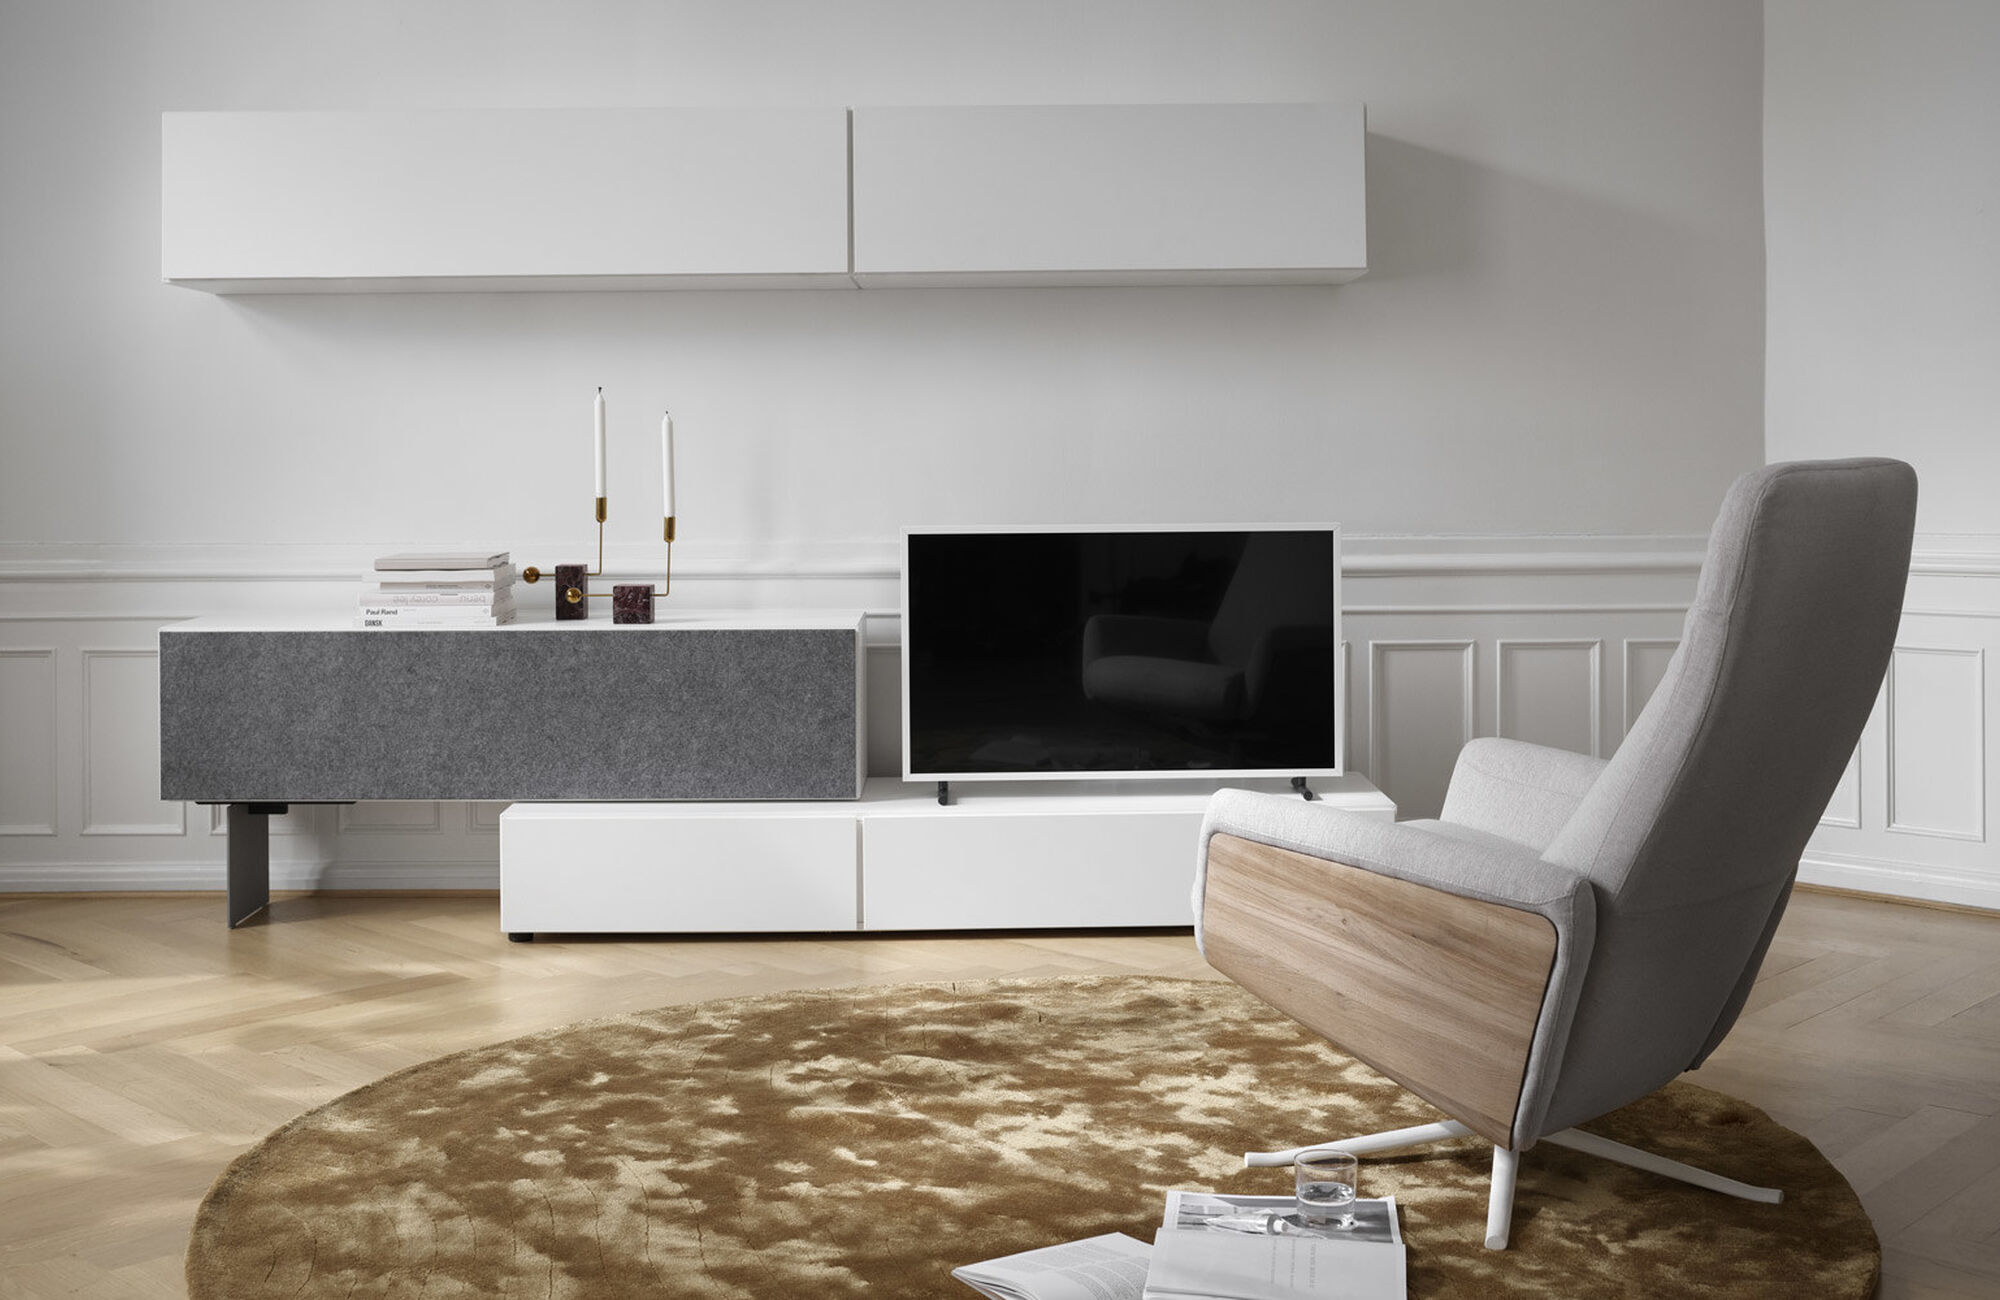 Wall systems - Lugano wall system with drawer, drop down and flip up doors